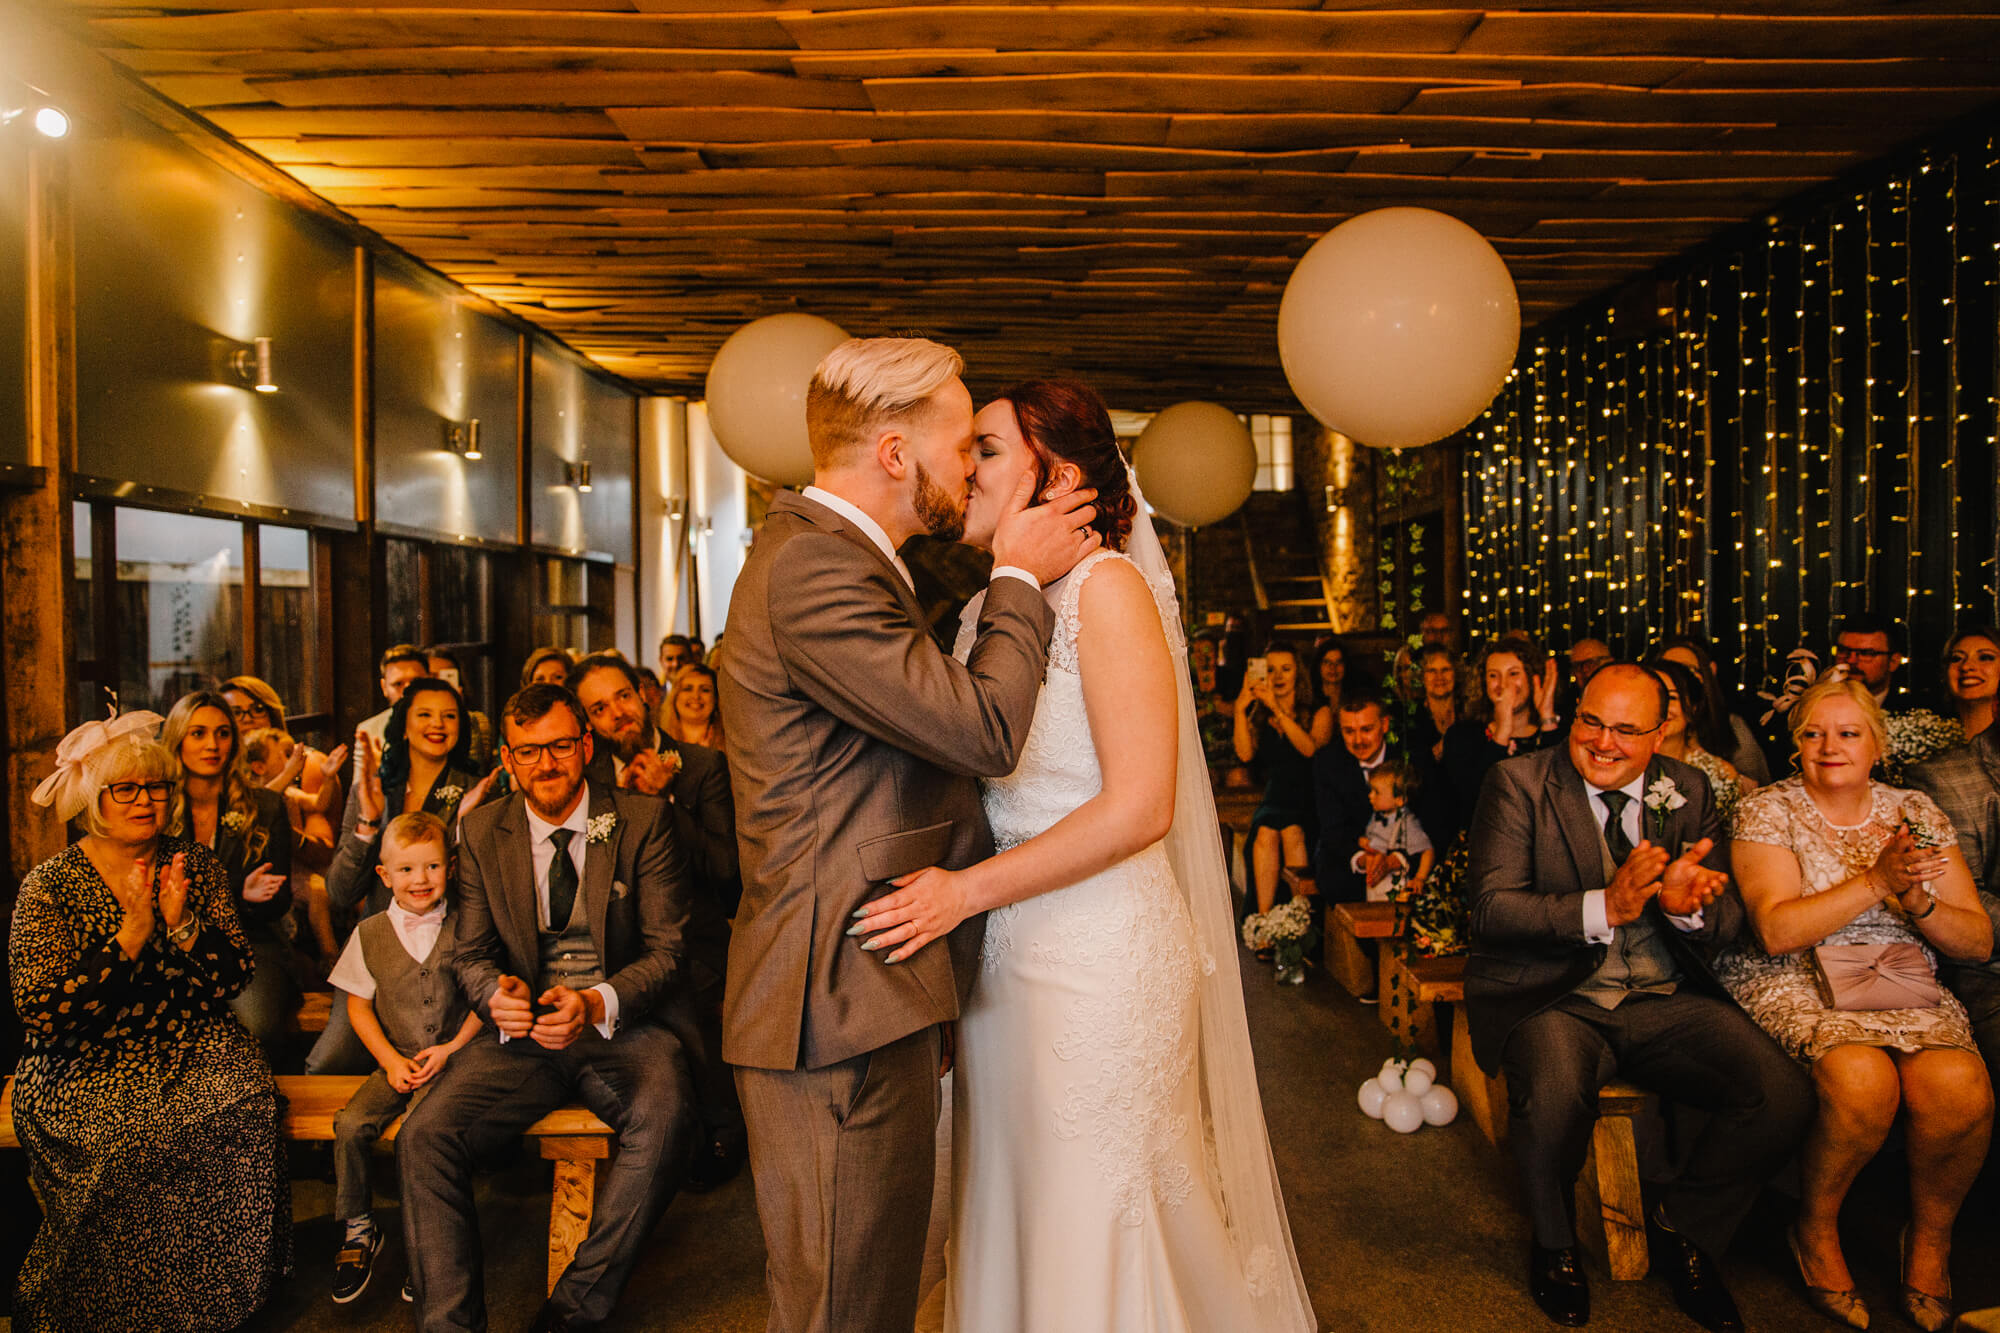 wedding service first kiss of newlyweds as bridal party celebrate